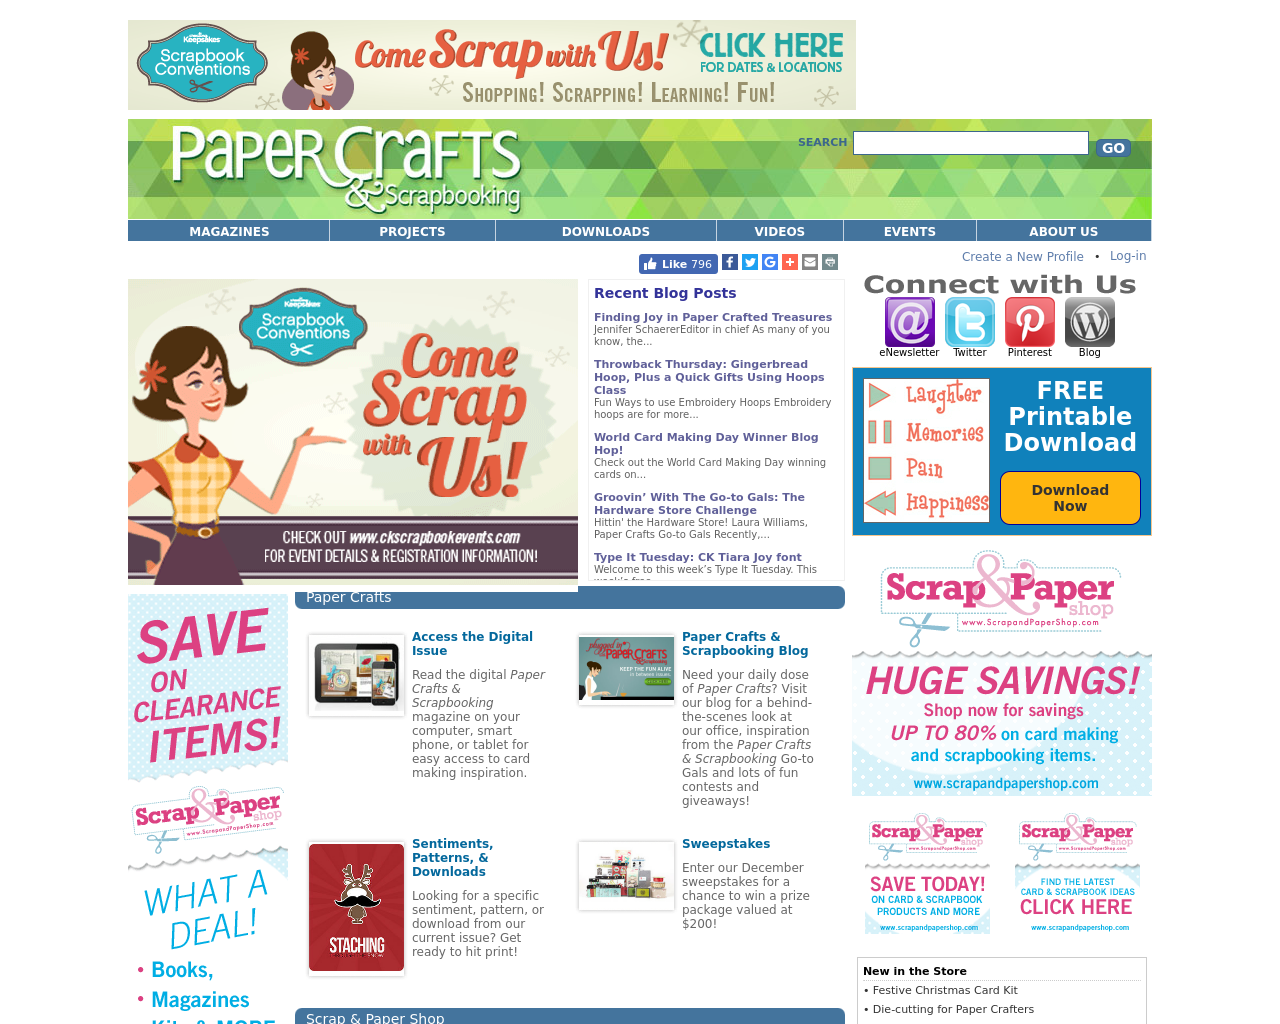 Paper-Crafts-&-Scrapbooking-Advertising-Reviews-Pricing